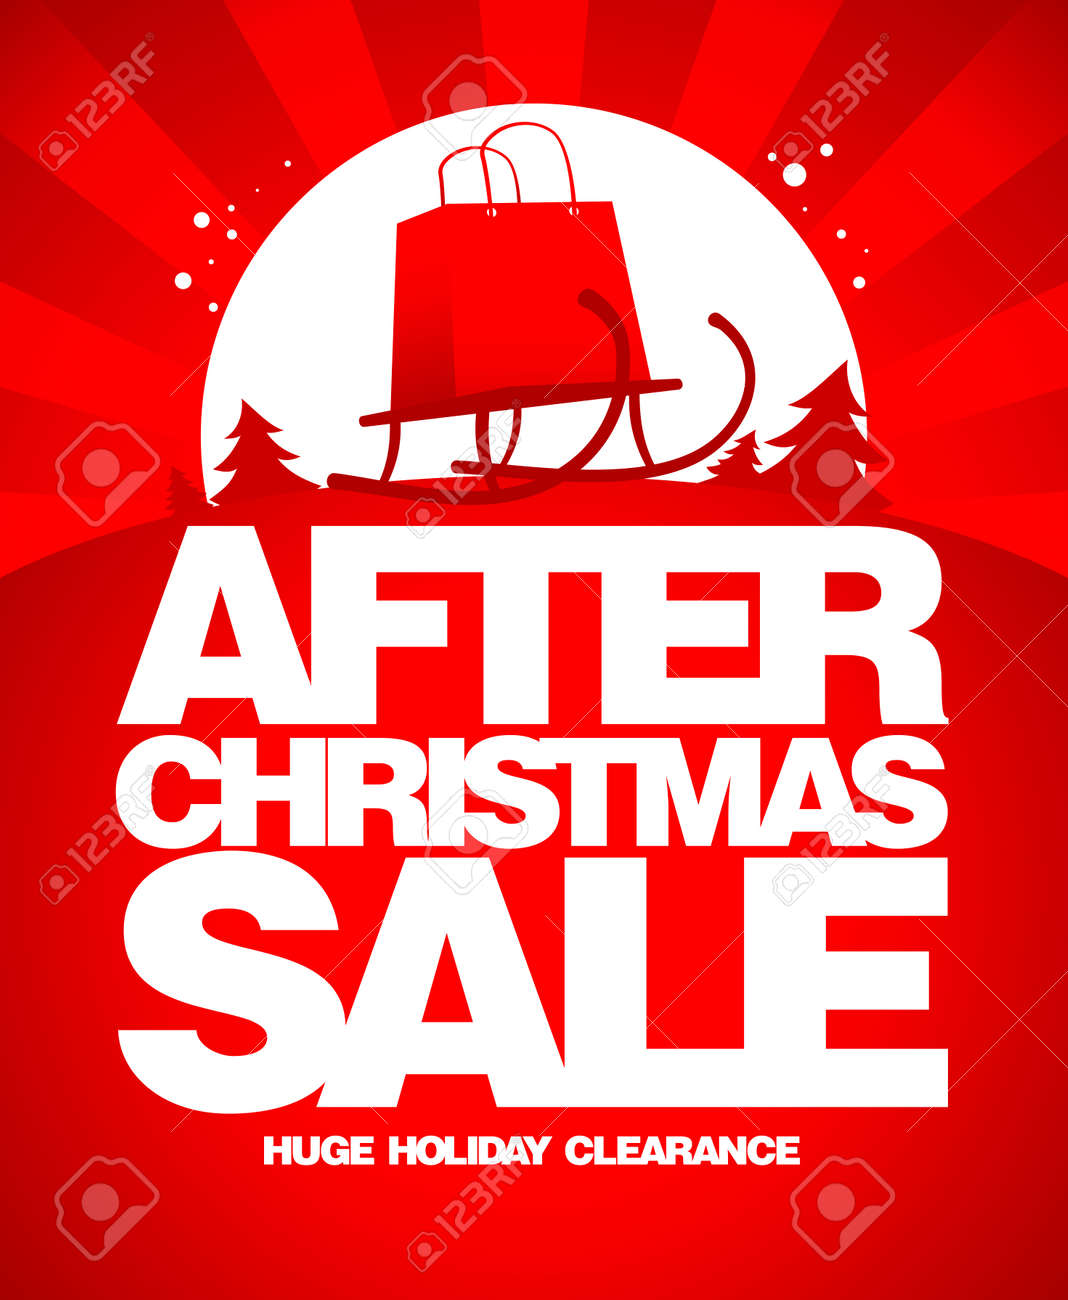 After christmas sale design template with shopping bag on a sled. - 158871840